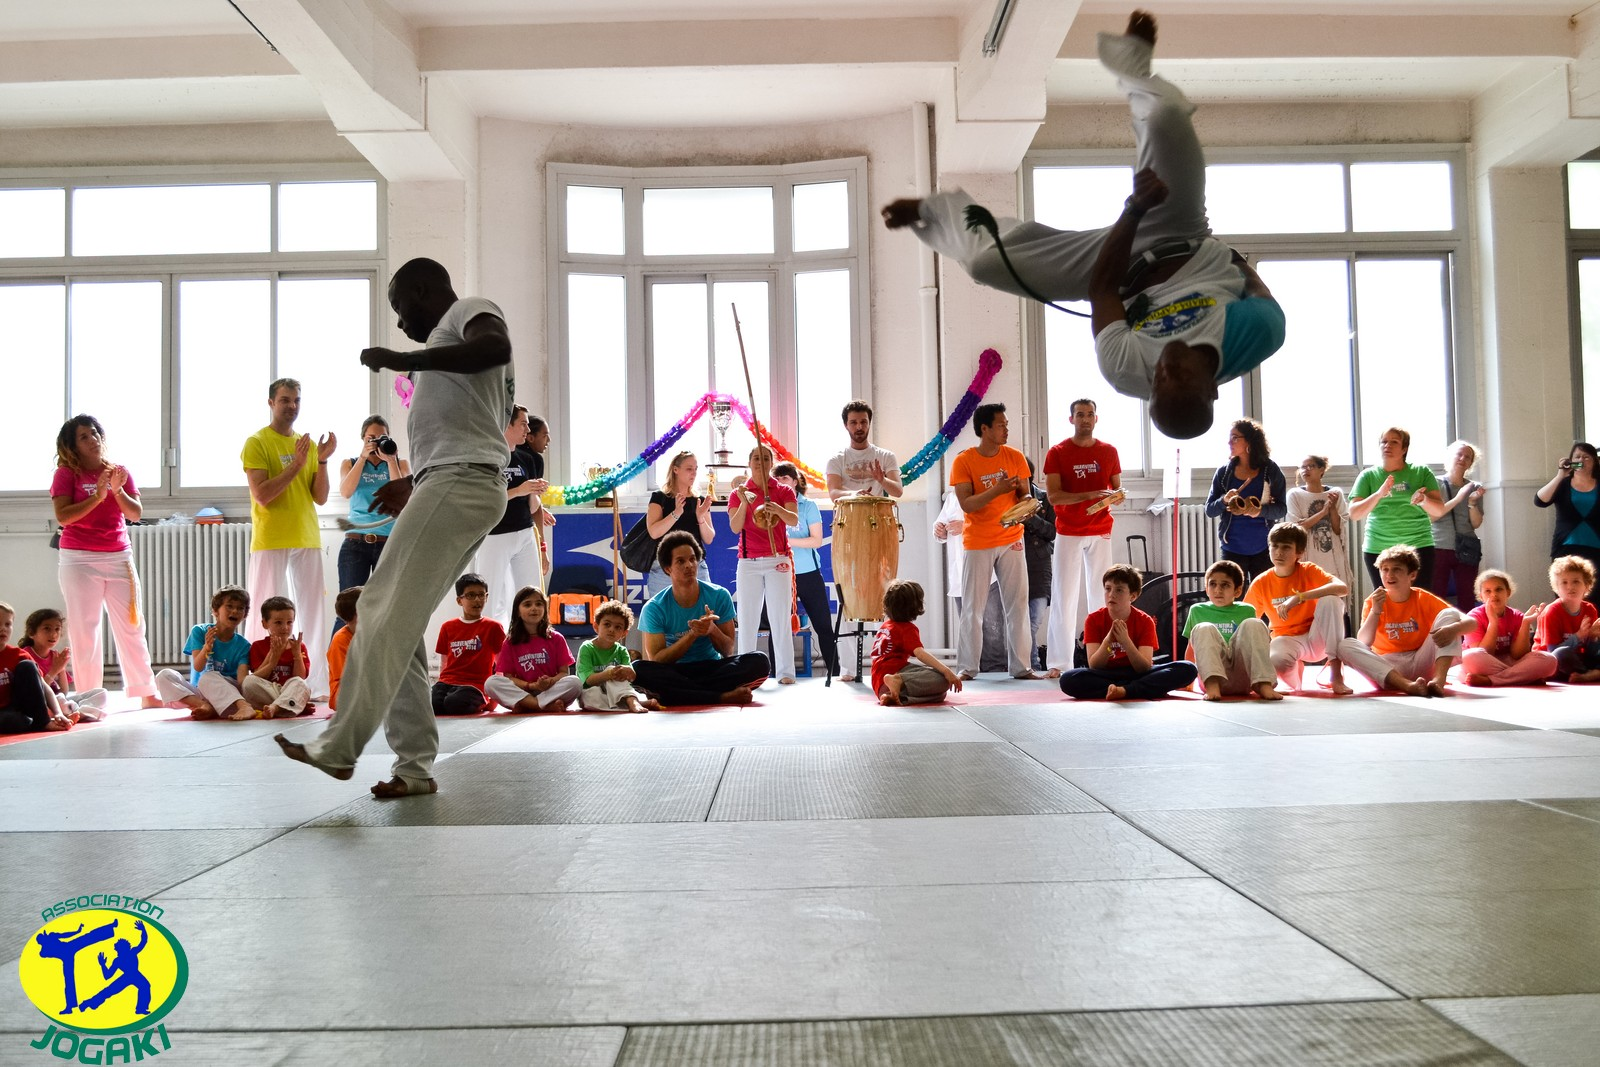 Association de Capoeira Paris Jogaki 2014 - atelier decouverte pour enfant jogaventura127 [L1600]